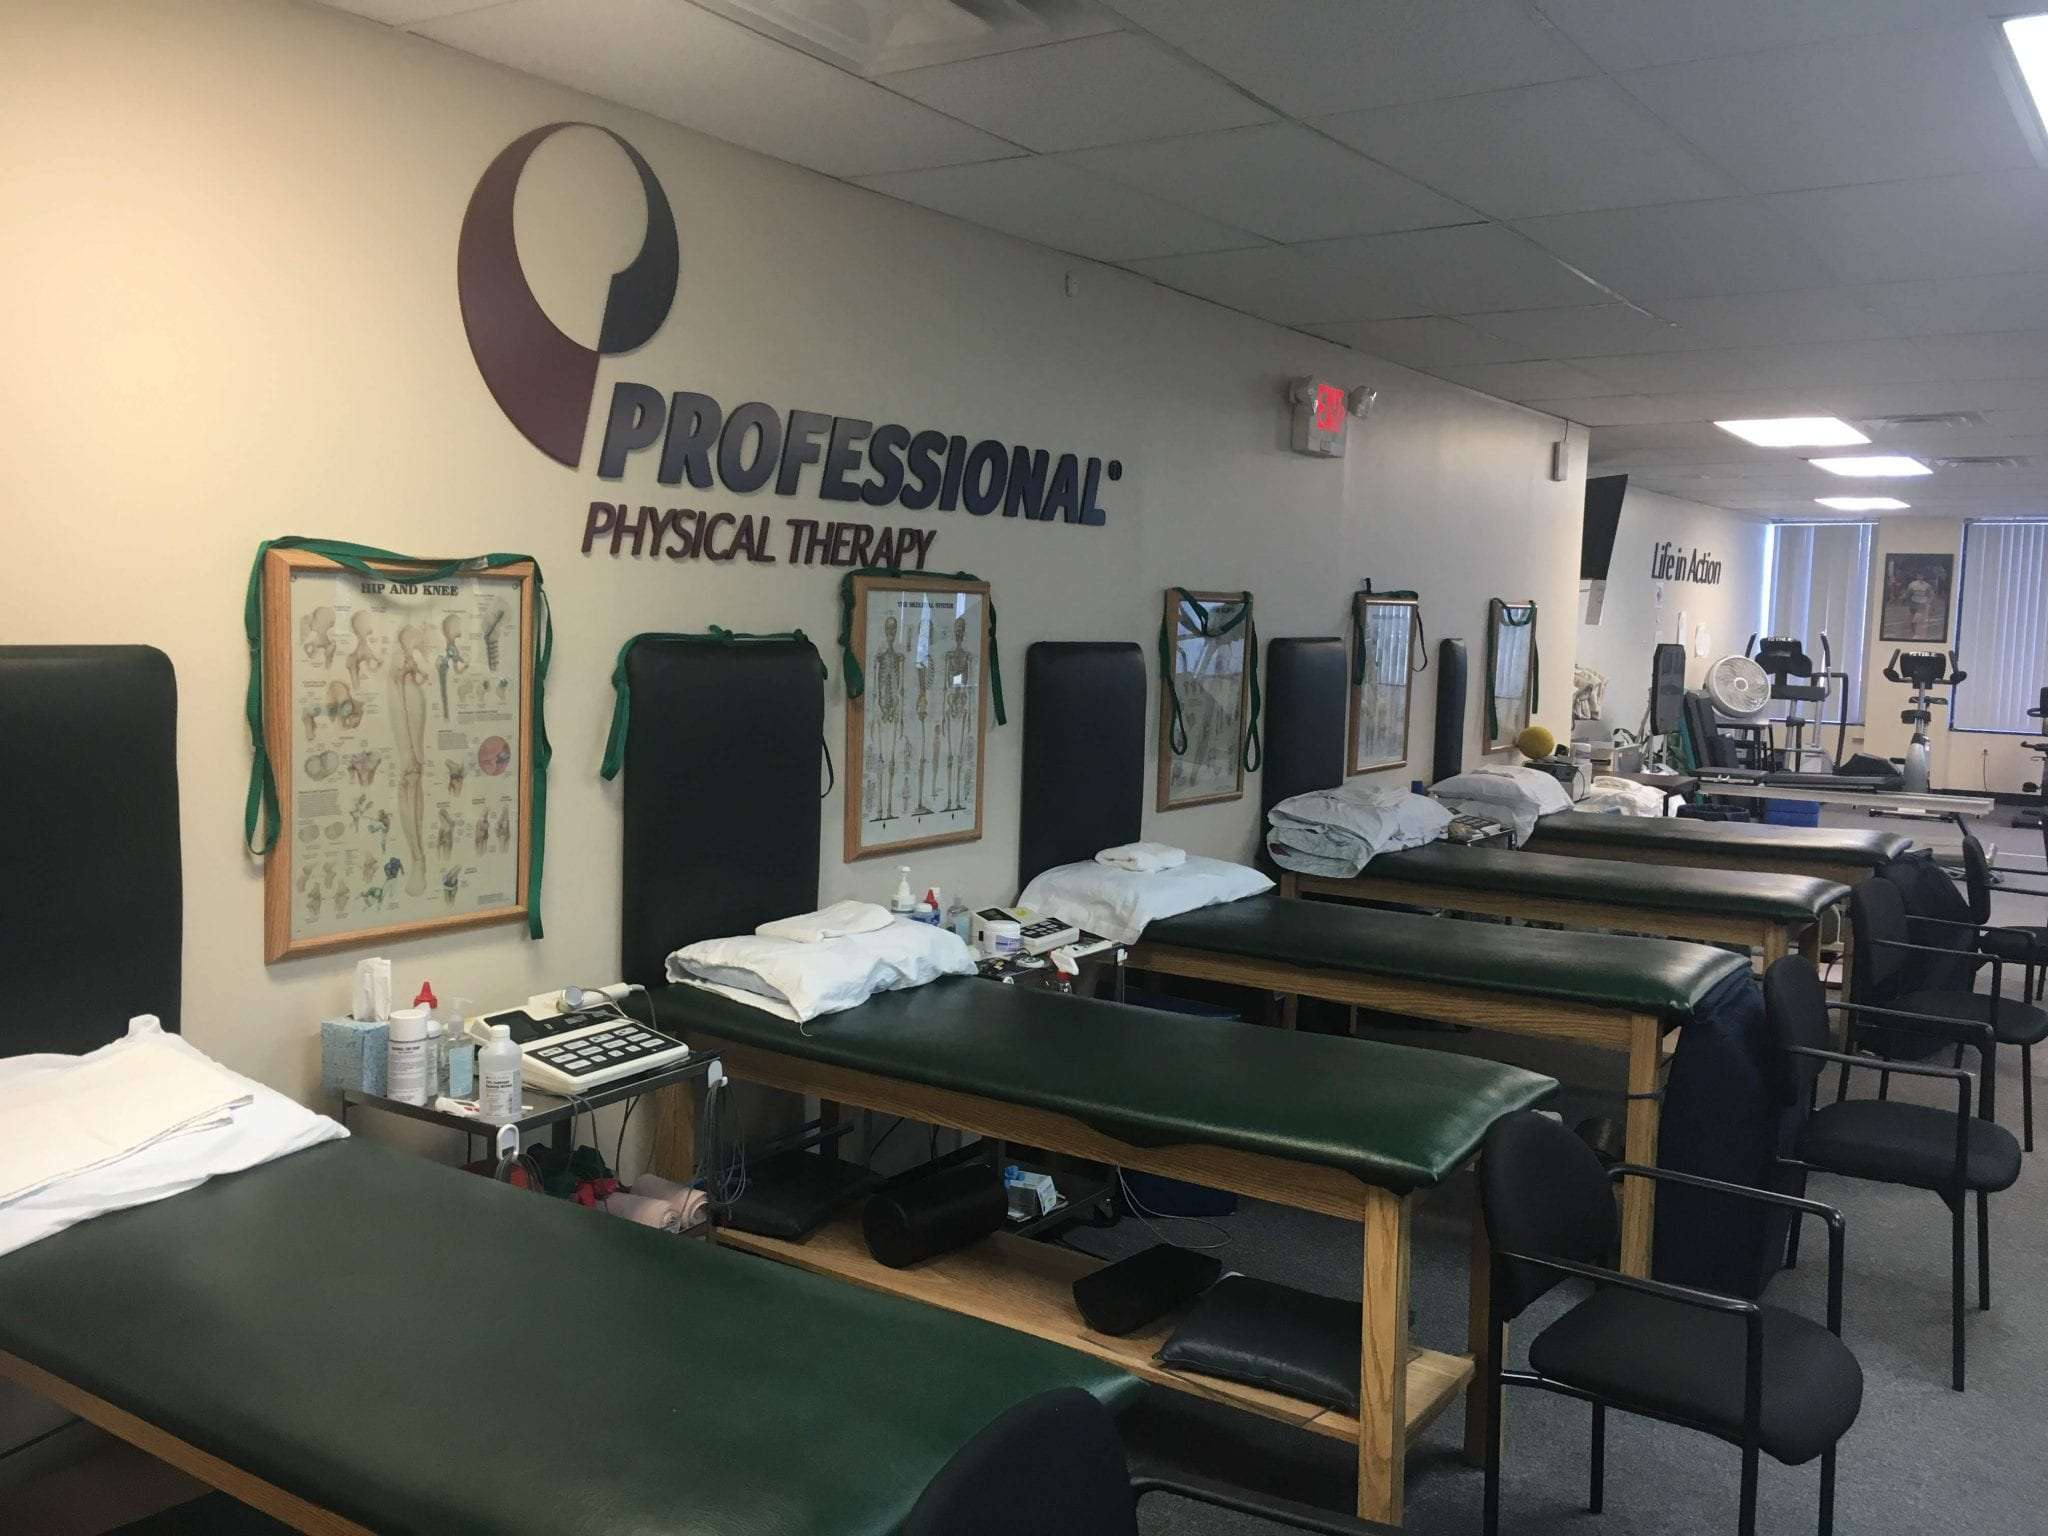 This is a photo of five stretch beds used for physical therapy. There are anatomy images on the wall at our clinic in Longwood, New York.